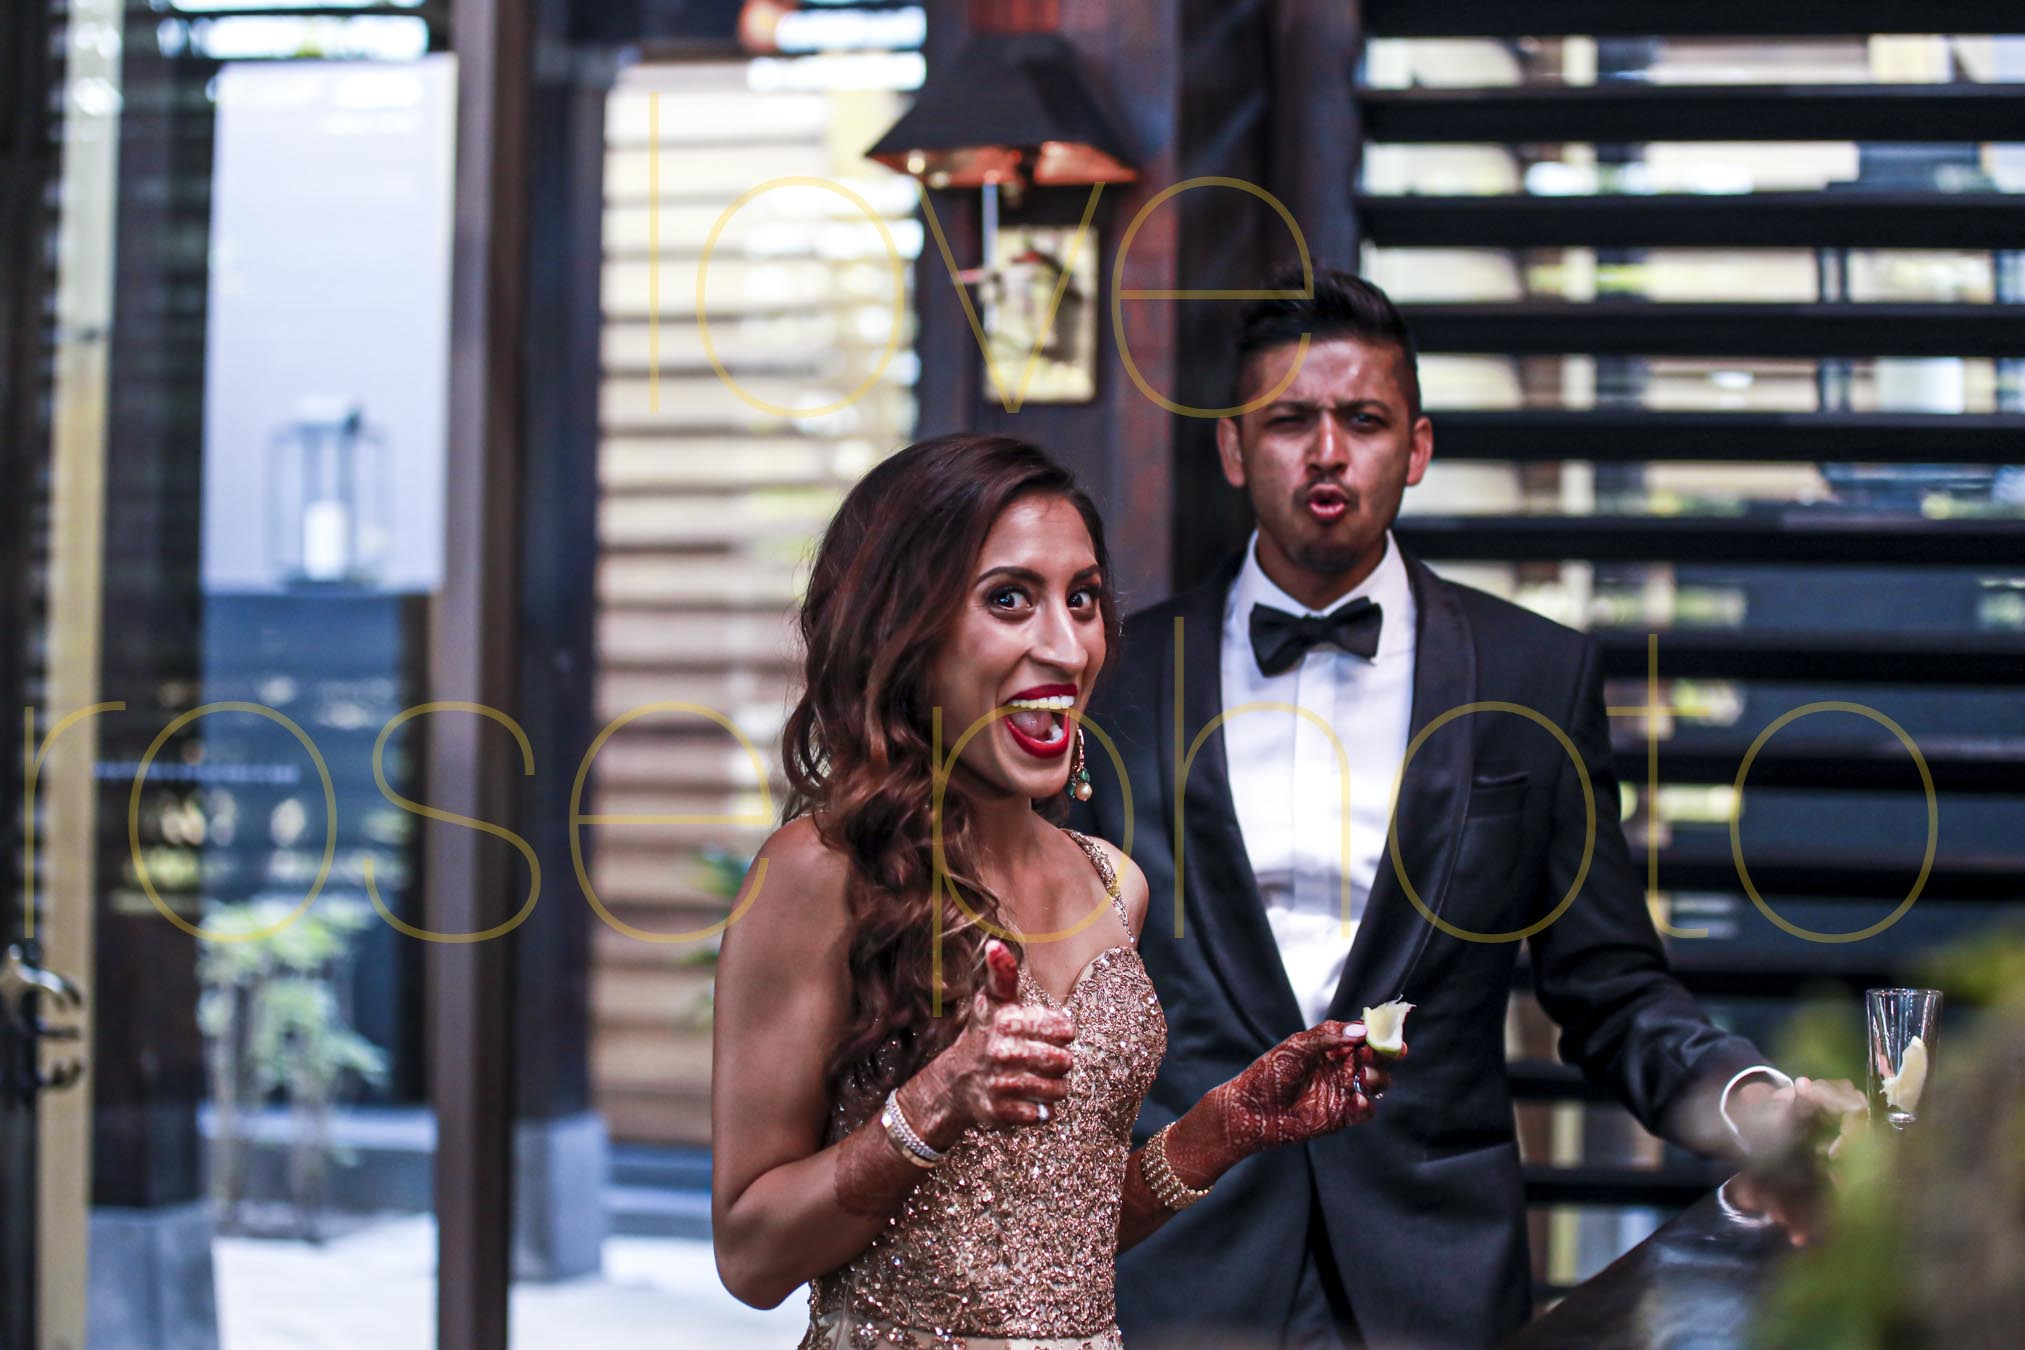 destination wedding photographer best of indian wed chicago asheville photographer-5546.jpg